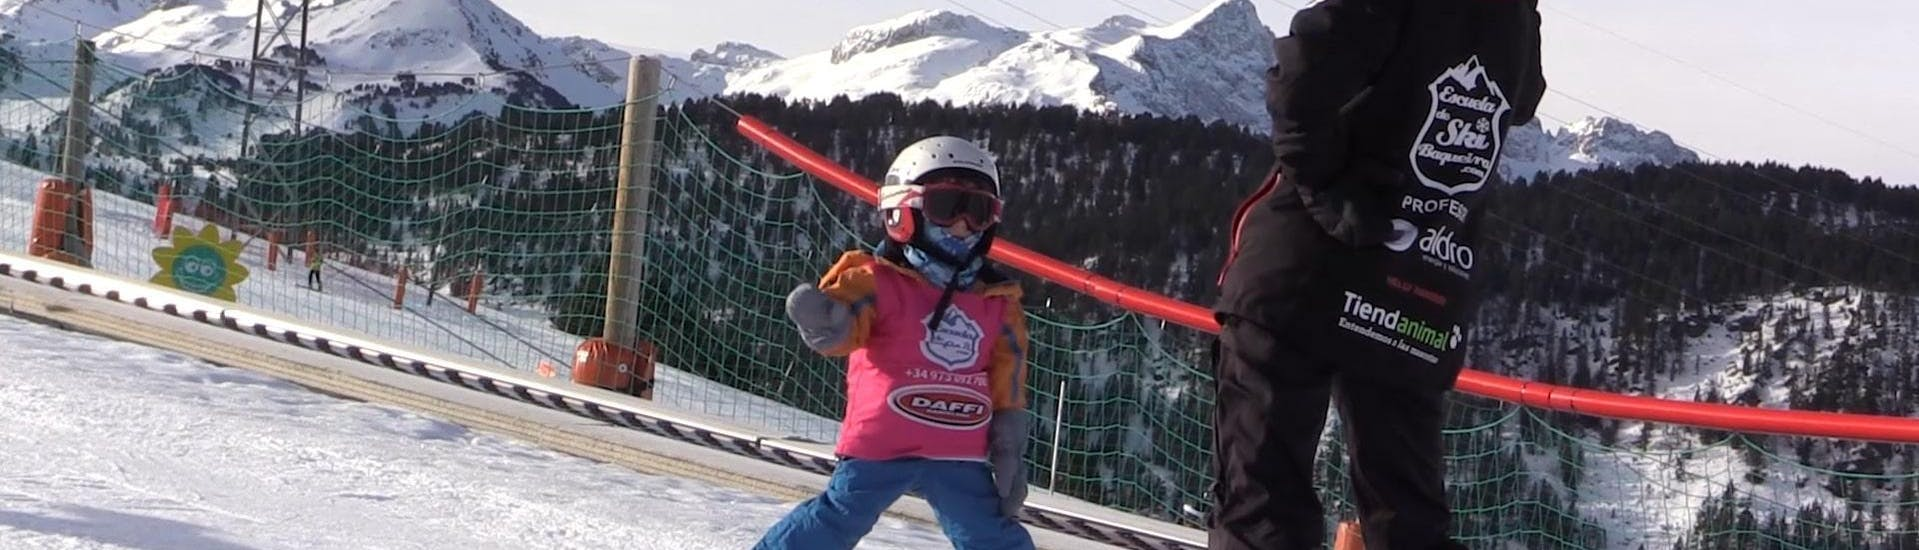 A child makes its first attempts on the slopes together with a ski instructor from Escuela Ski Cerler within the Private Ski Lessons for Kids for all Levels & Ages.